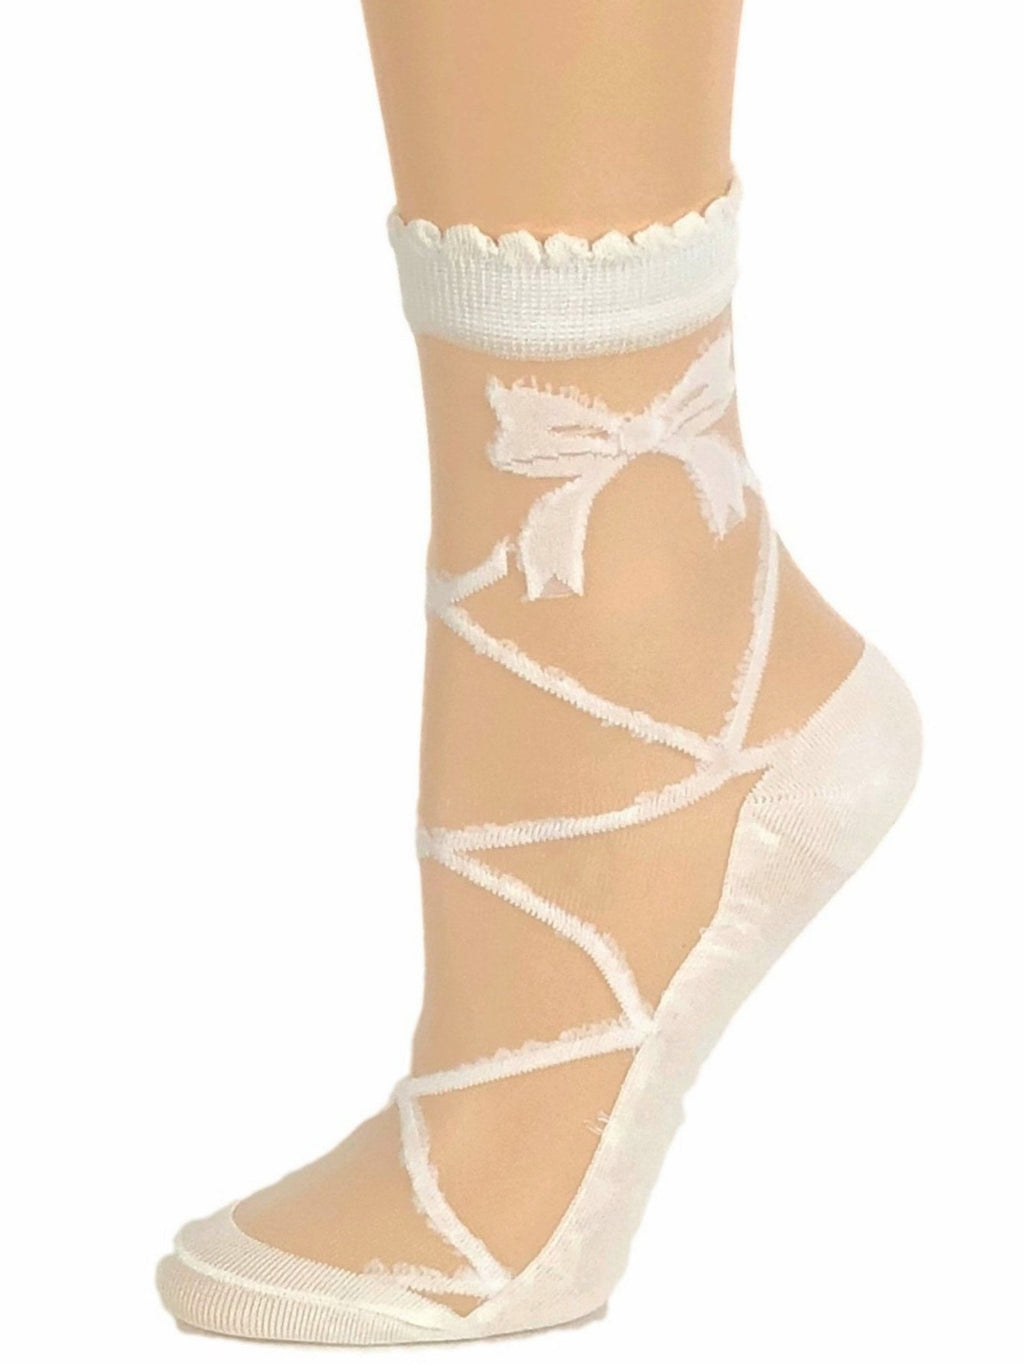 Milky White Bow Sheer Socks - Global Trendz Fashion®